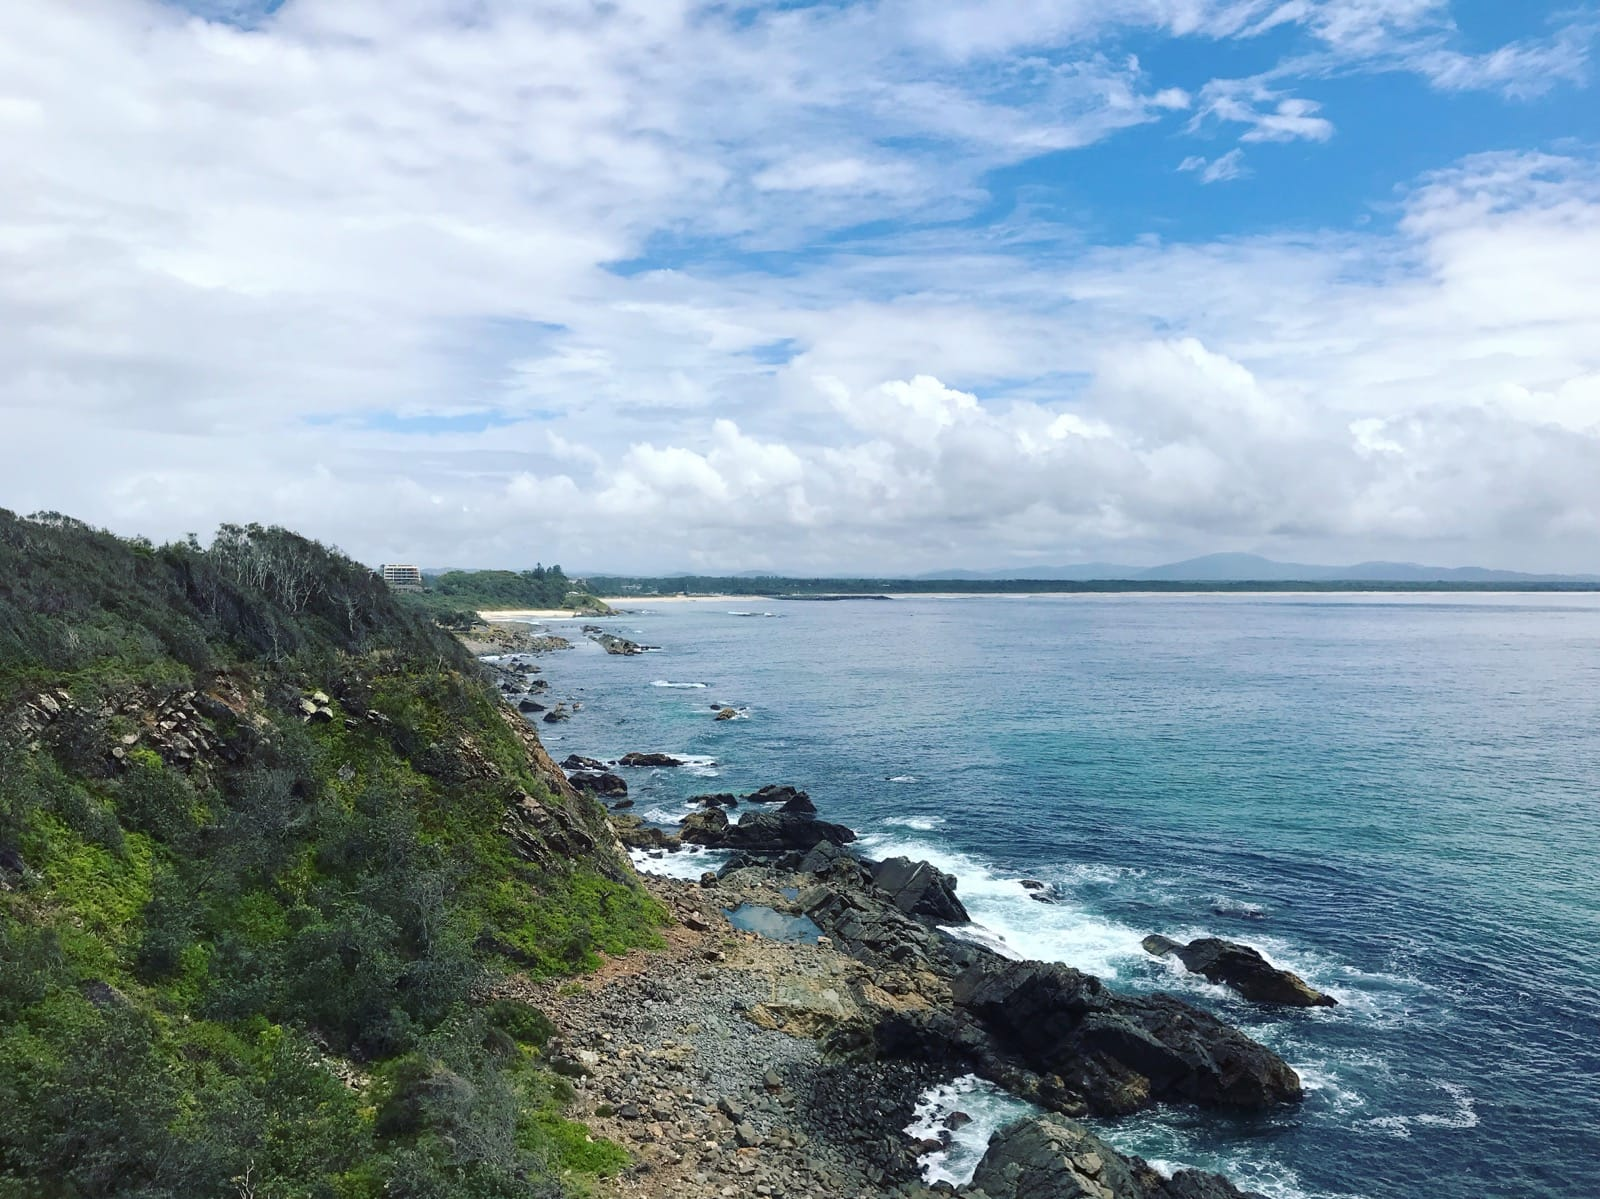 A view from a high vantage point of a high part of grassy bushland leading to the ocean. A rock beach separates the land from the water. The sky is blue but has many clouds